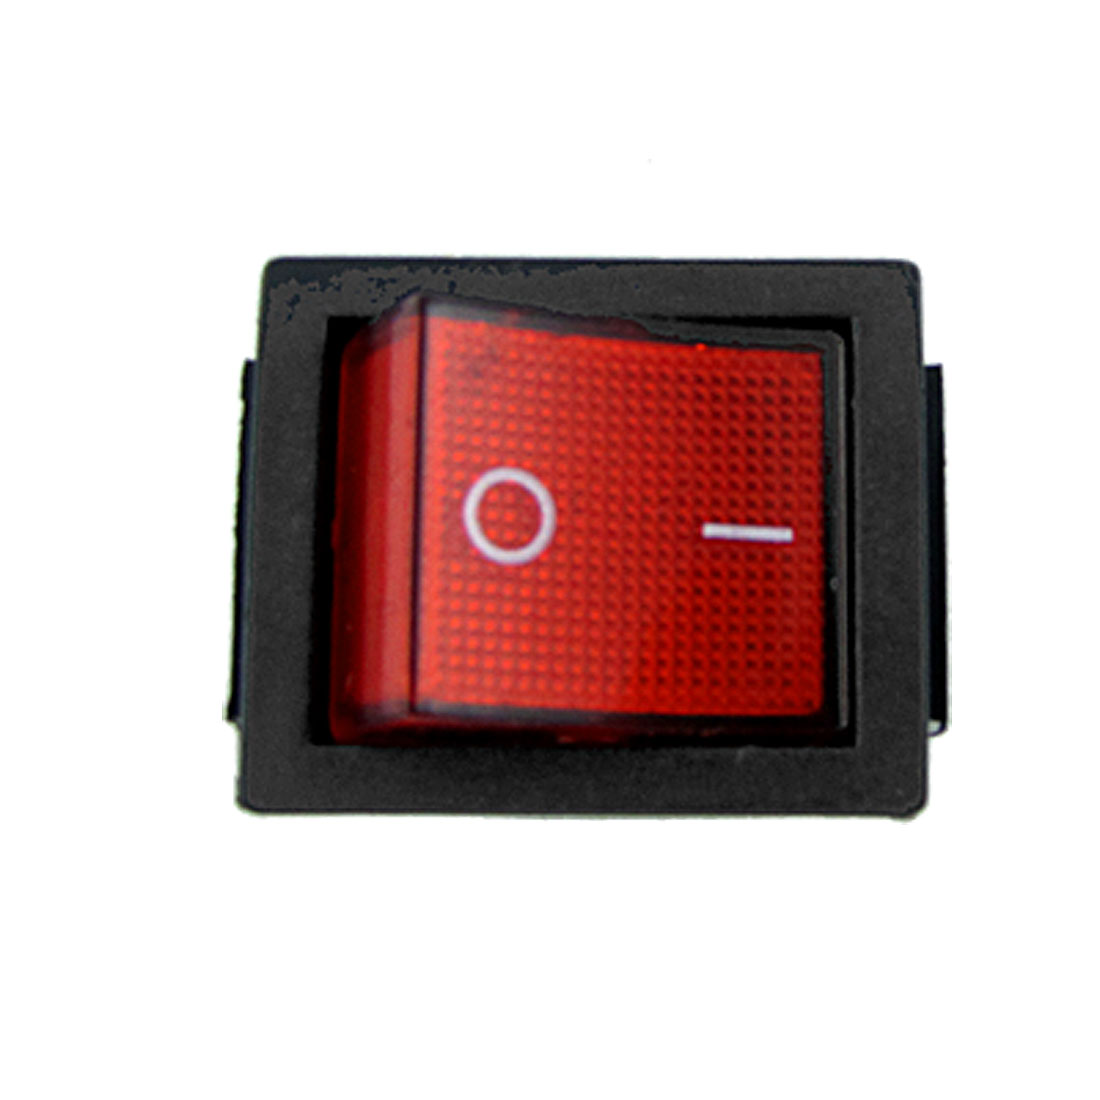 AC 250V 15A Red Light Illuminated 6 Pin DPDT ON/ON Snap In Boat Rocker Switch